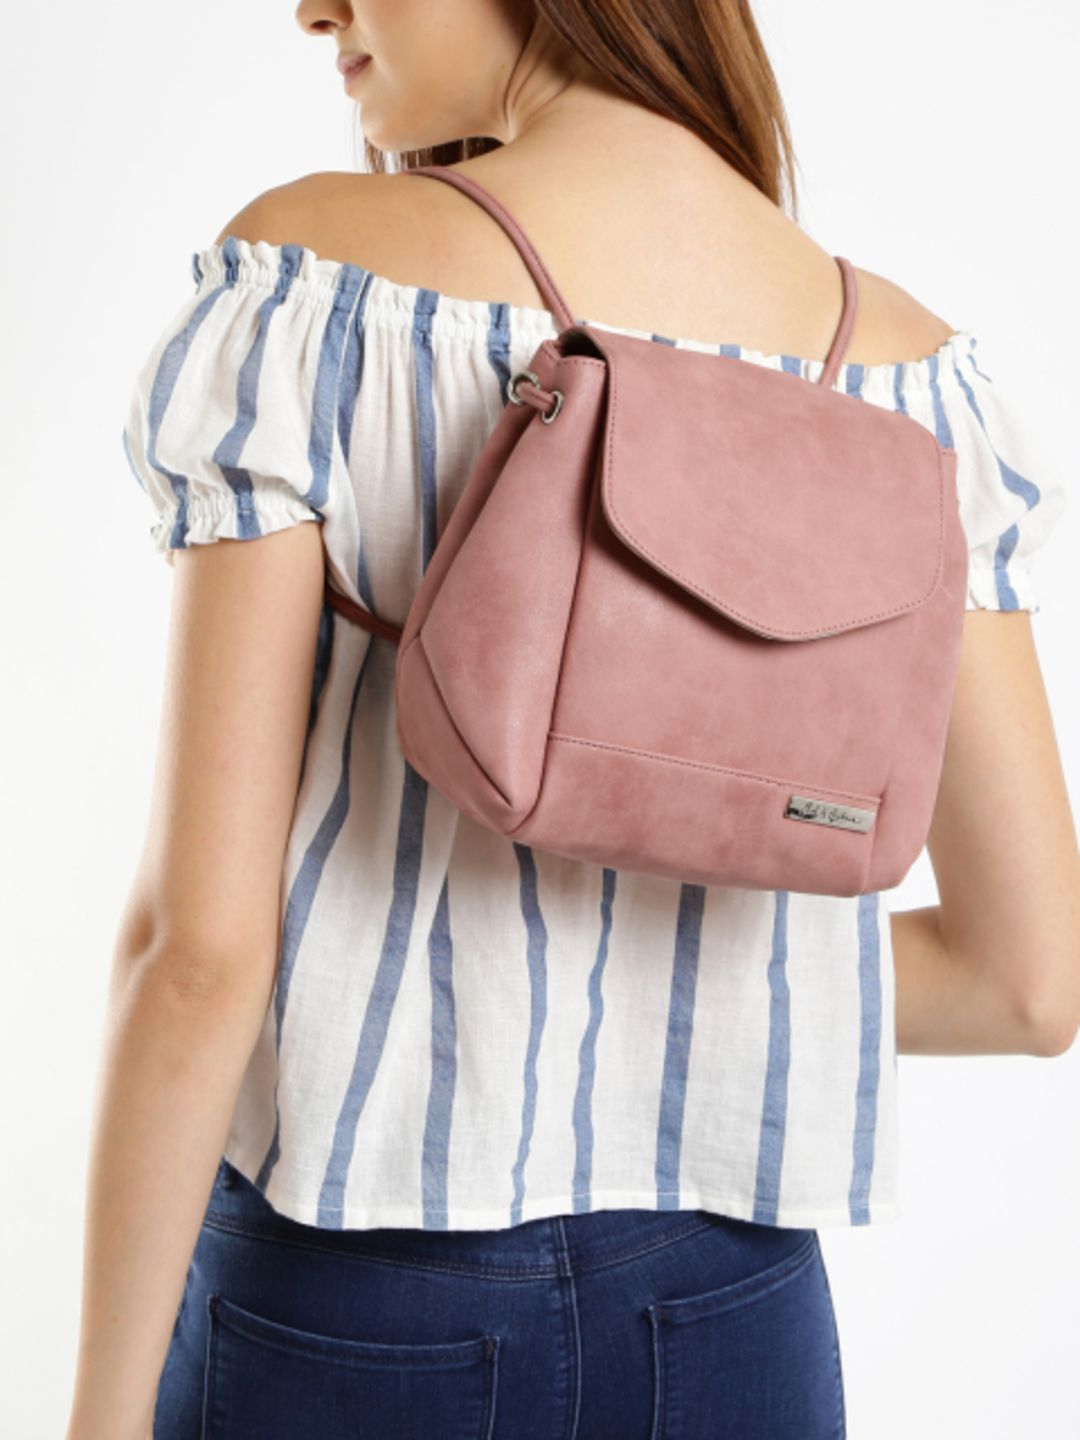 f5daf2d2a8ba90 Pink backpack cum sling bag, has a flap across the mouth secured with a  magnetic button closure One long sling strap that can be converted to  shoulder ...